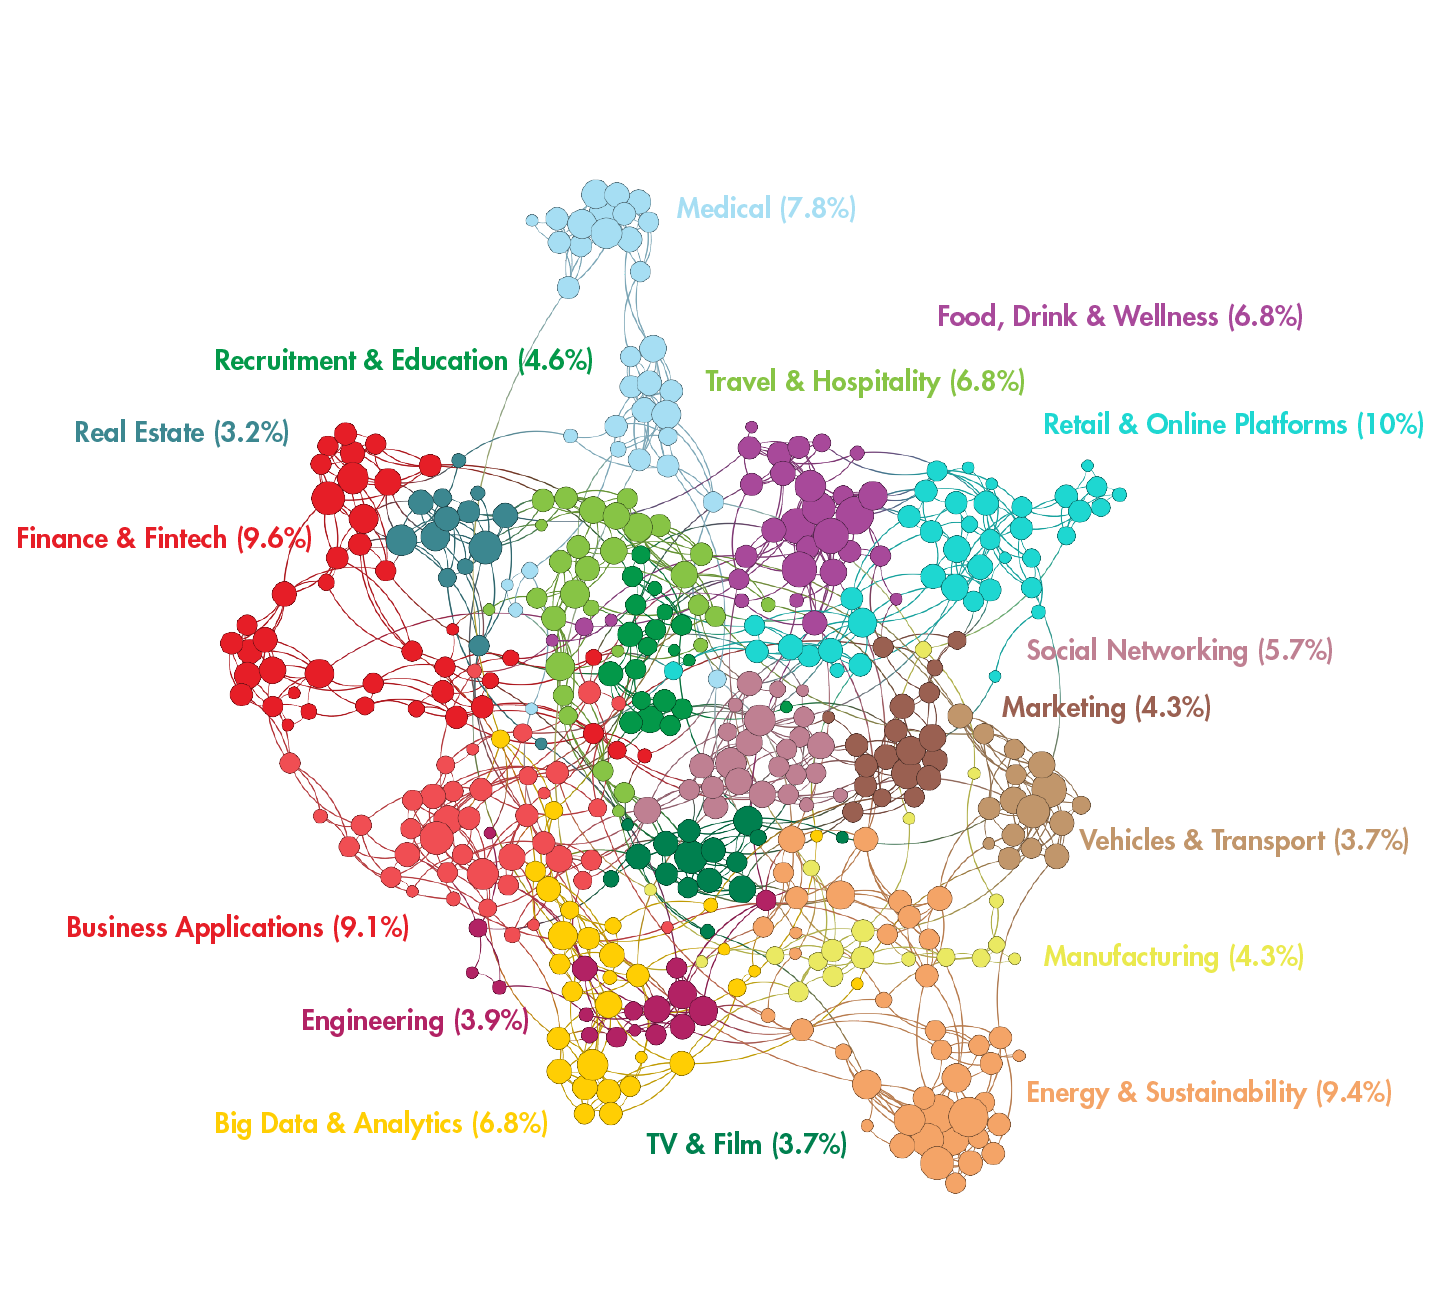 Network view of ~440 companies in Munich that have received funding in the past 10 years, nodes represent companies, colored and labeled by market segment